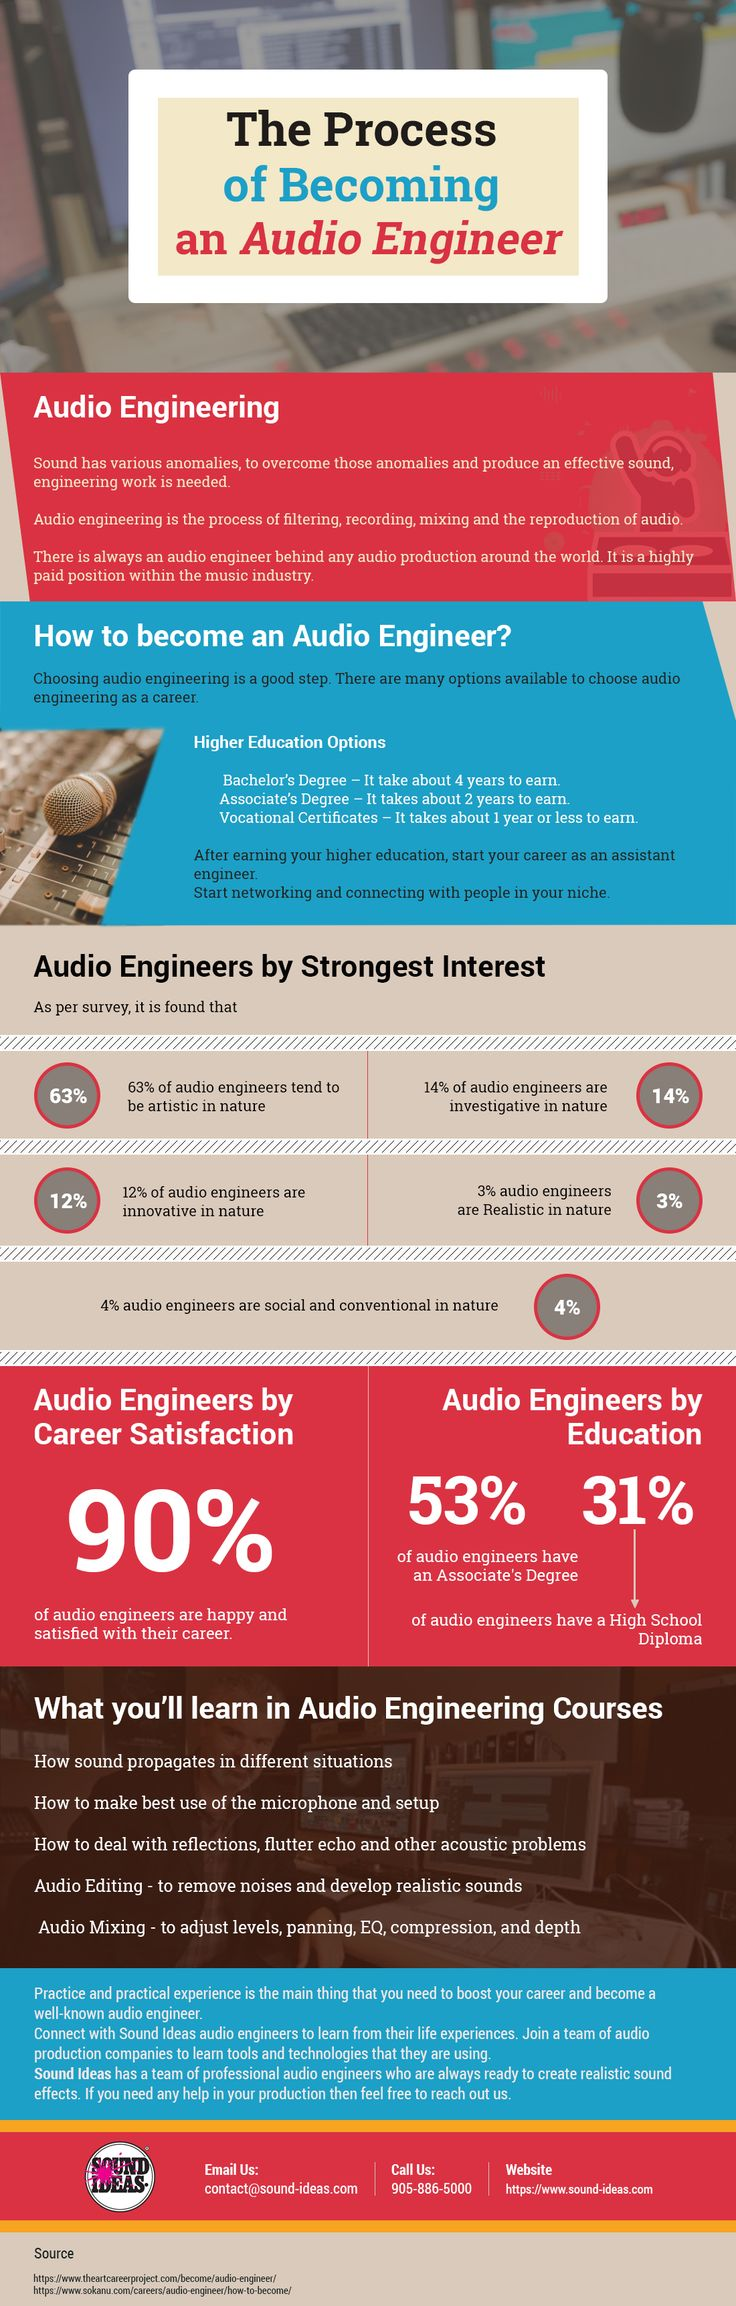 Audio engineers work on the technical aspects of recording. Check out this infographic for tips on how to become a better audio engineer. To learn more, visit www.soundideas.com.